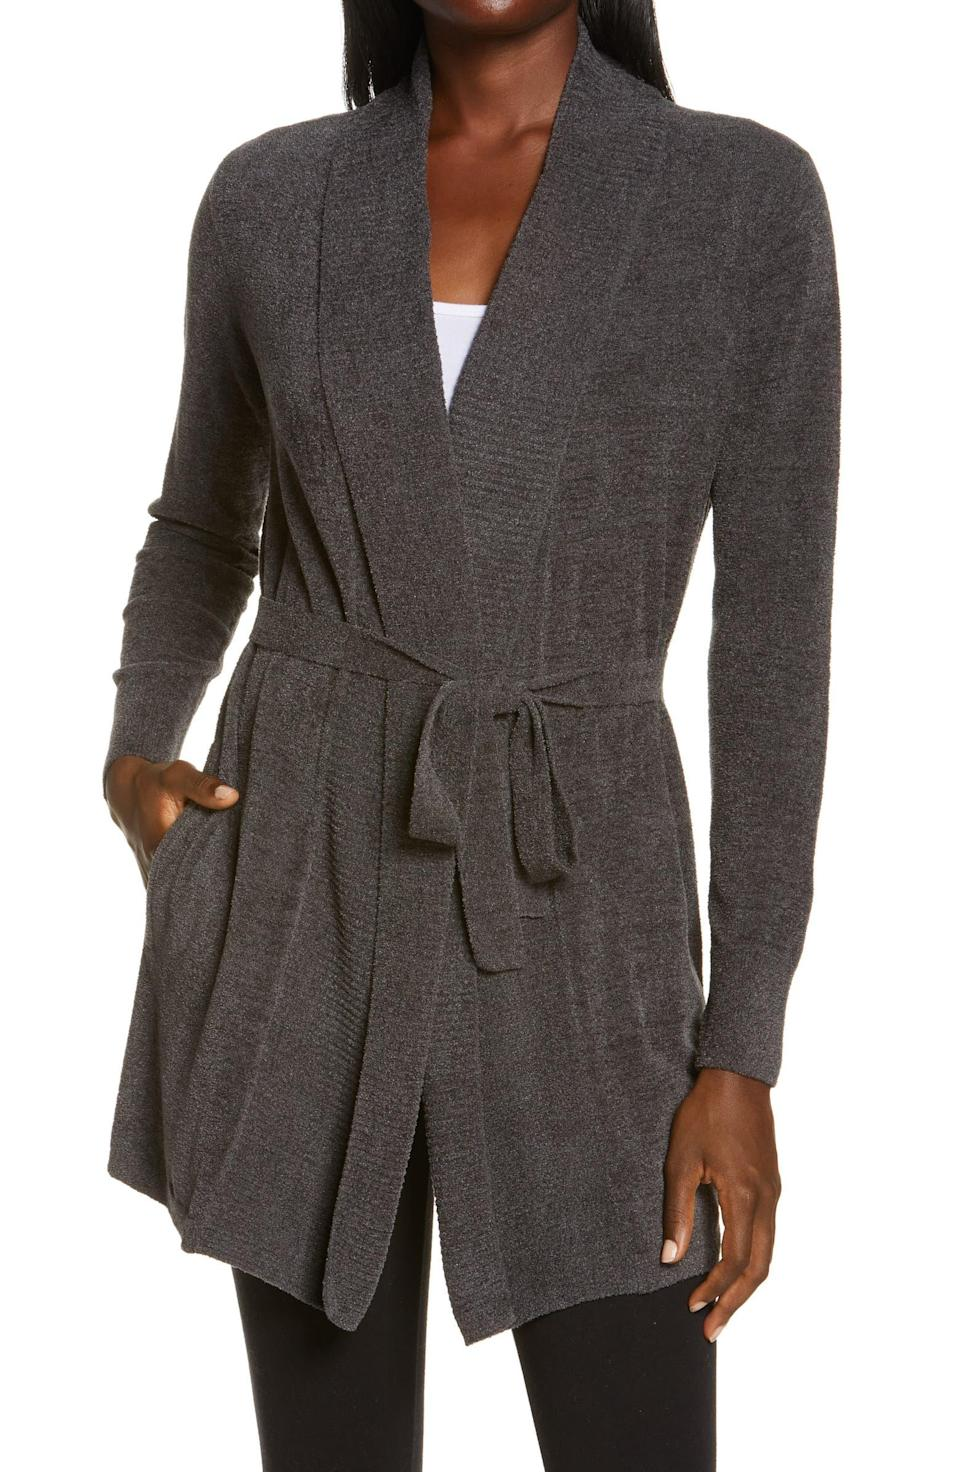 """<h2>Barefoot Dreams CozyChic Drape Rib Cardigan</h2><br><strong>NEXT BEST DEAL</strong><br>The same buttery cardigan with a slighlty different cut and wrap detailing. A win-win.<br><br><em>Shop more <a href=""""https://go.skimresources.com/?id=30283X879131&xs=1&url=https%3A%2F%2Fwww.nordstrom.com%2Fbrowse%2Fanniversary-sale%2Fall%3Fcampaign%3D0728publicgnpt1%26jid%3Dj012165-15573%26cid%3D00000%26cm_sp%3Dmerch-_-anniversary_15573_j012165-_-catpromo_corp_persnav_shop%26%3D%26postalCodeAvailability%3D10543%26filterByProductType%3Dclothing_sweaters&sref=https%3A%2F%2Fwww.refinery29.com%2Fen-us%2Fnordstrom-anniversary-sale-best-sellers"""" rel=""""nofollow noopener"""" target=""""_blank"""" data-ylk=""""slk:Nordstrom Anniversary Sale sweaters"""" class=""""link rapid-noclick-resp"""">Nordstrom Anniversary Sale sweaters</a></em> <br><br><strong>BAREFOOT DREAMS®</strong> CozyChic™ Drape Rib Cardigan, $, available at <a href=""""https://go.skimresources.com/?id=30283X879131&url=https%3A%2F%2Fwww.nordstrom.com%2Fs%2Fbarefoot-dreams-cozychic-drape-rib-cardigan%2F5923483"""" rel=""""nofollow noopener"""" target=""""_blank"""" data-ylk=""""slk:Nordstrom"""" class=""""link rapid-noclick-resp"""">Nordstrom</a>"""